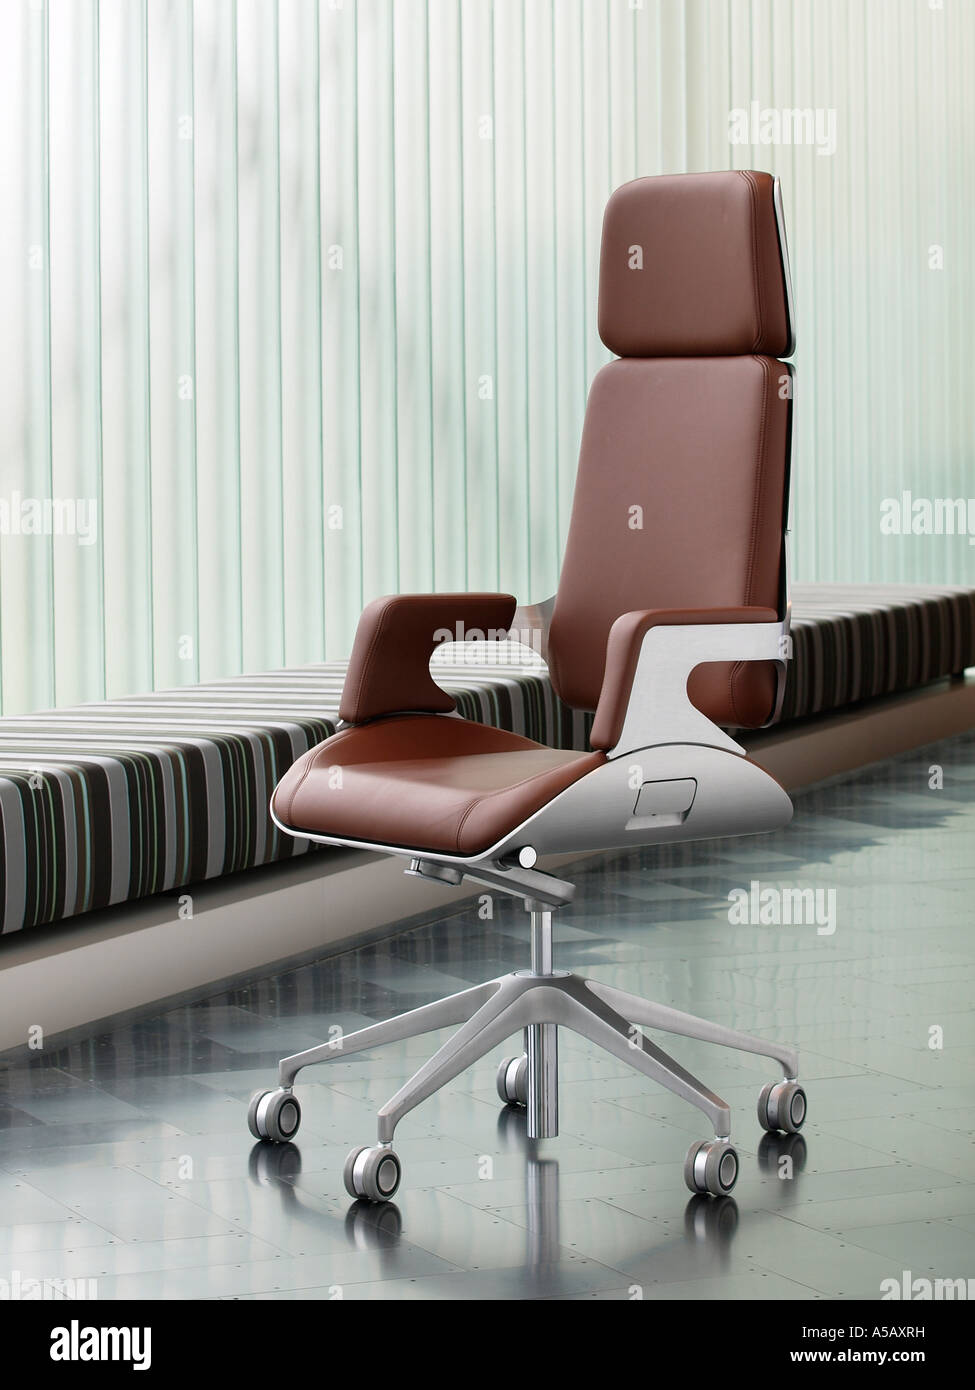 brushed metal and brown leather luxury office chair on. Black Bedroom Furniture Sets. Home Design Ideas